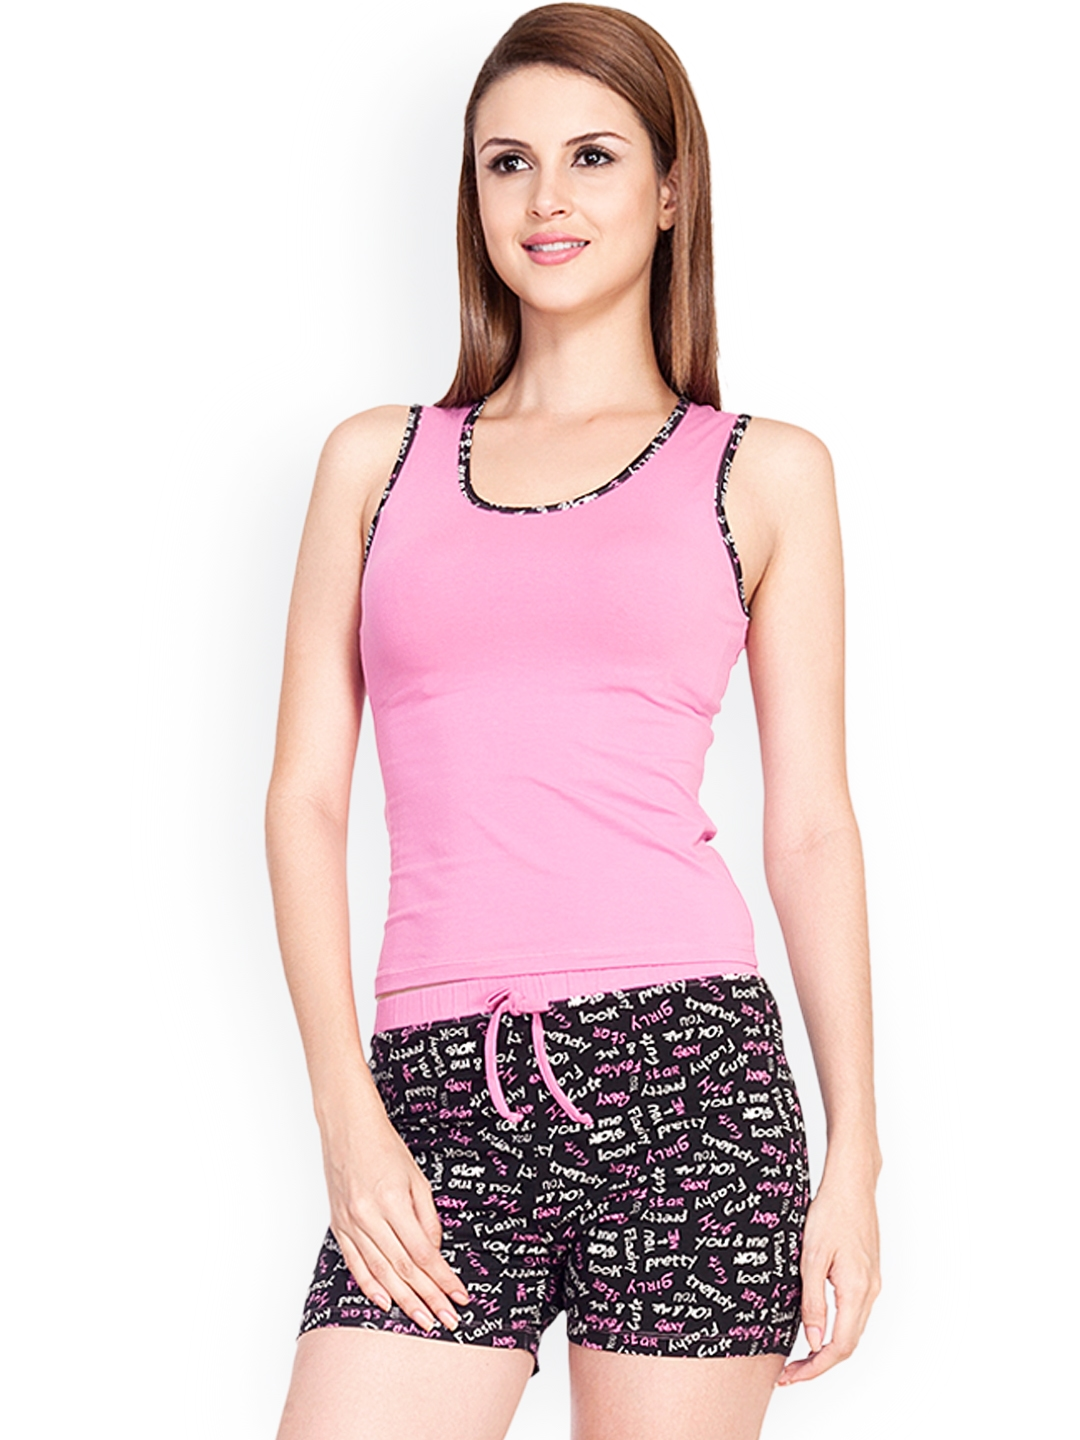 de8570ed41 Buy Soie Pink & Black Printed Shorts Set NT 16 - Night Suits for ...